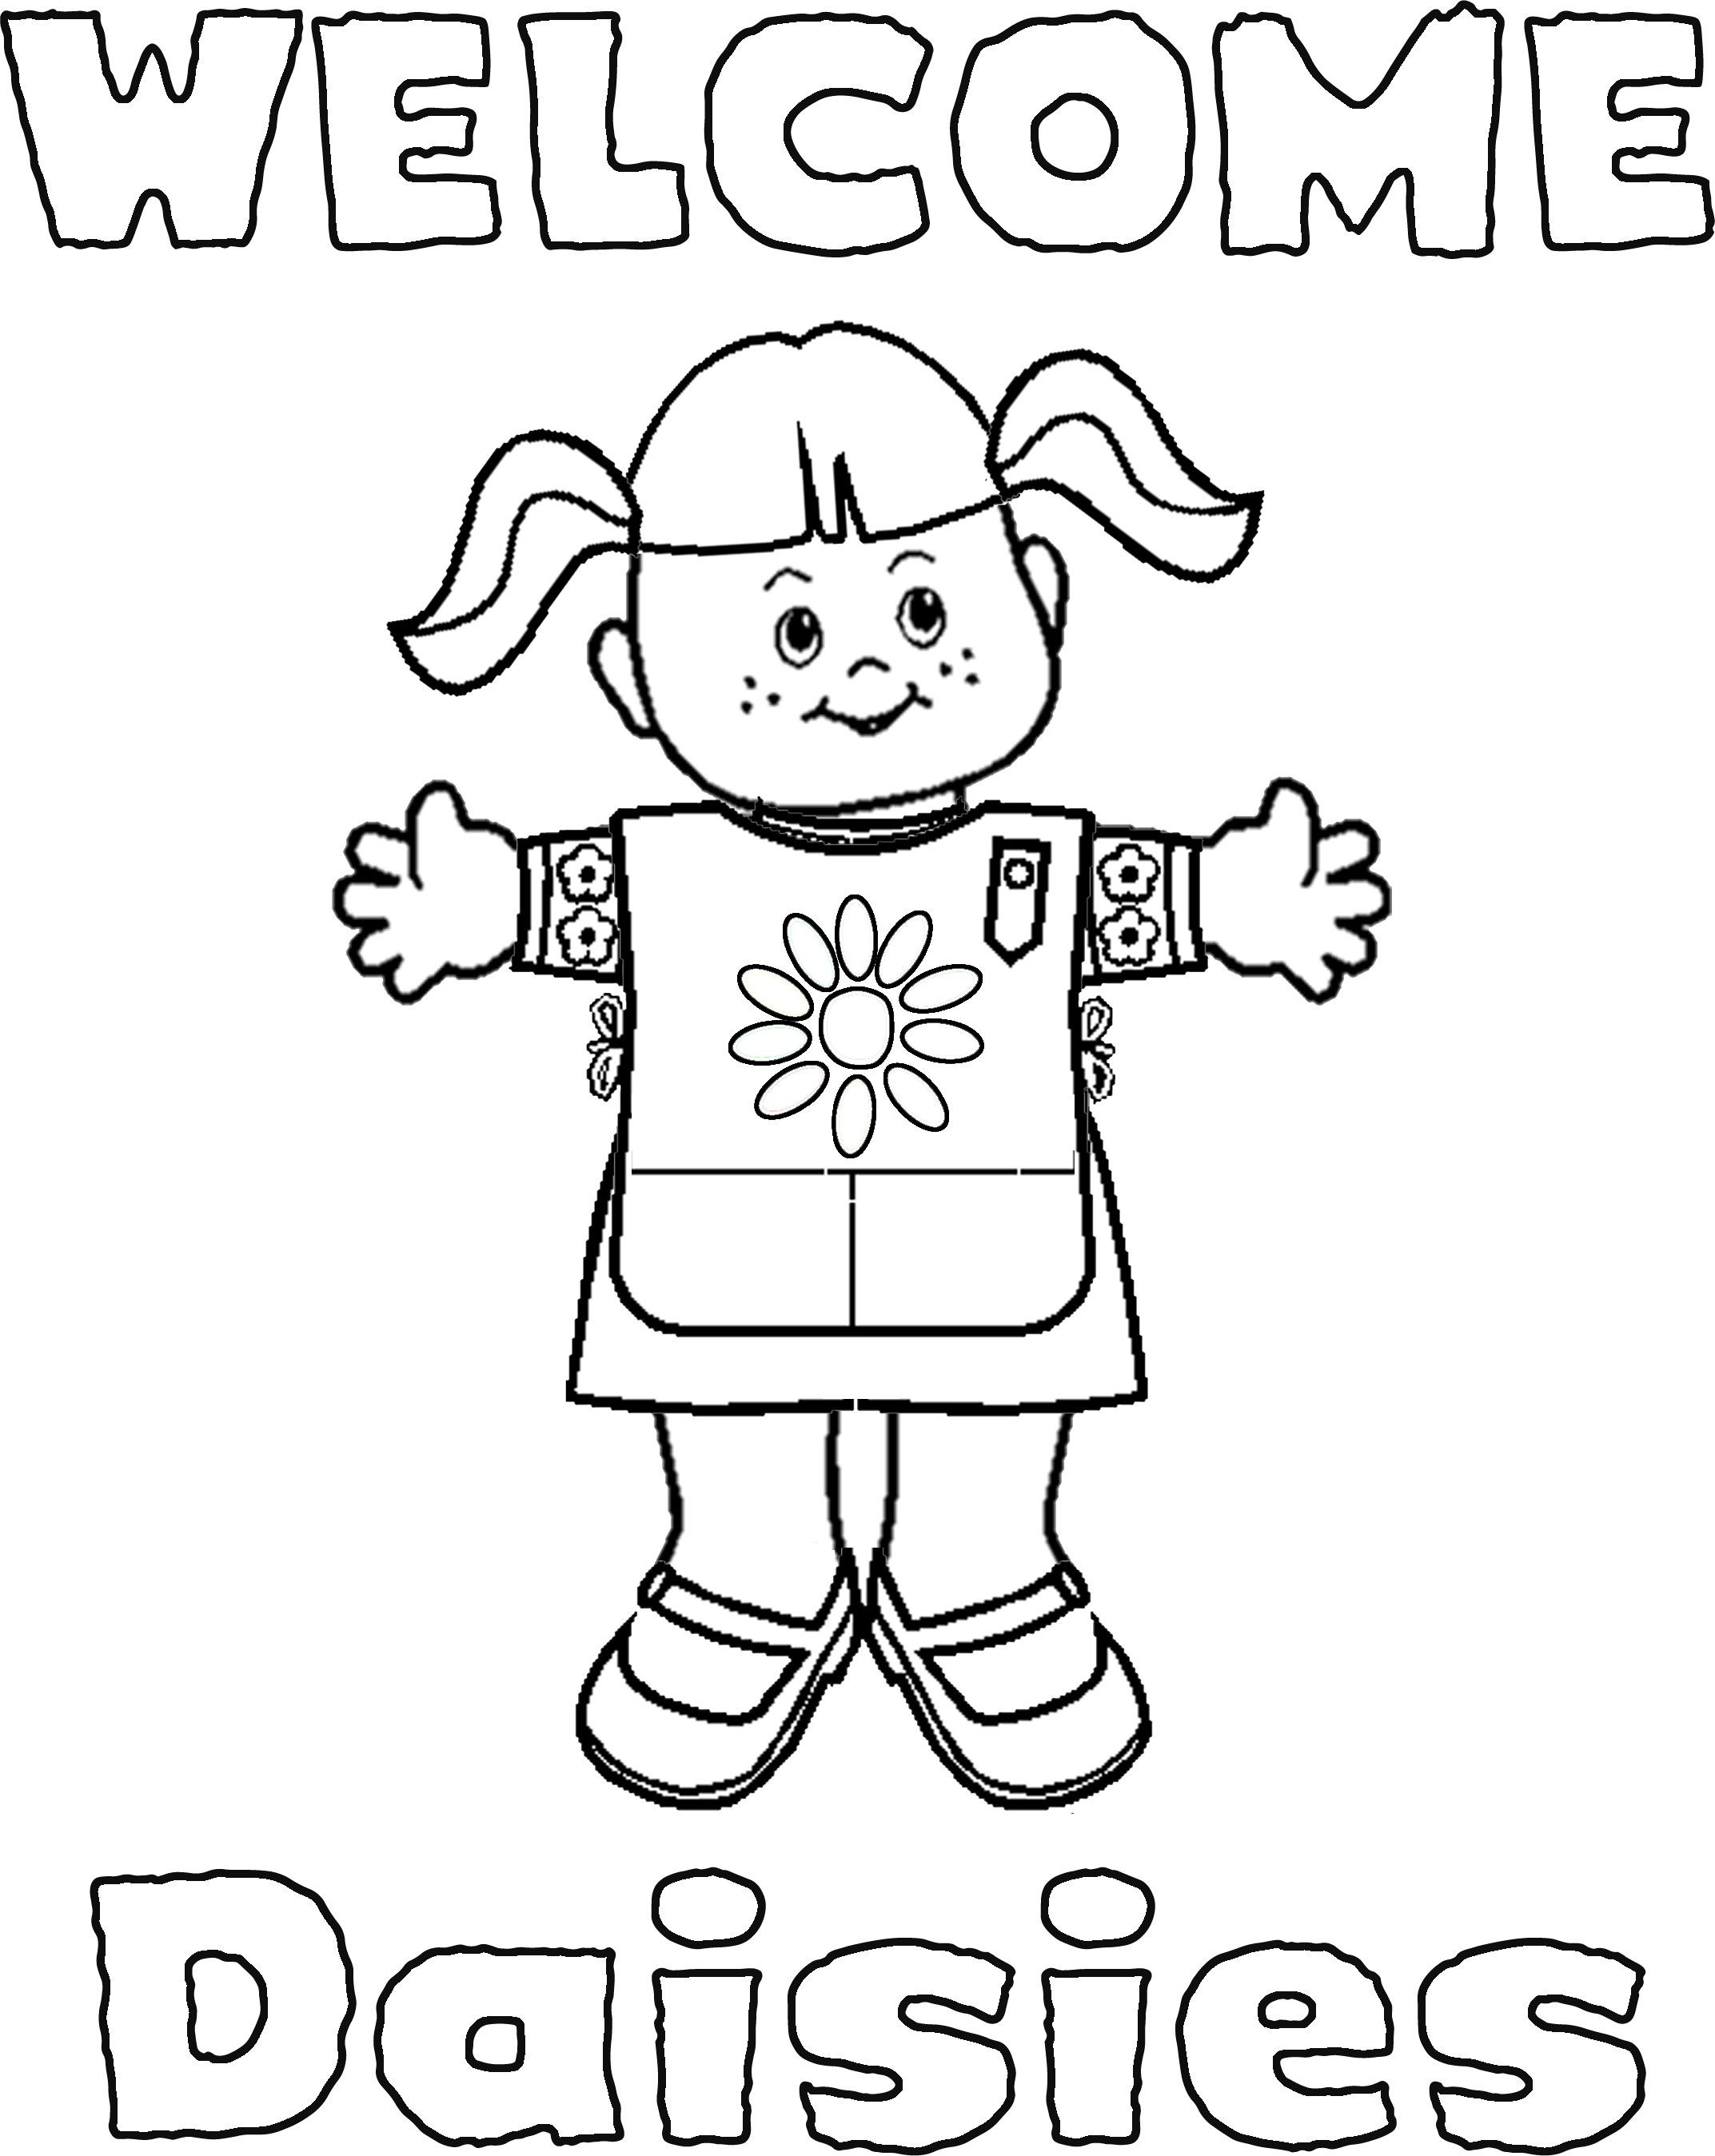 Daisy Girl Scout Coloring Pages Coloring Sheets Girl Scouts Girl Scout Daisy Activities Daisy Girl Scouts Daisy Scouts